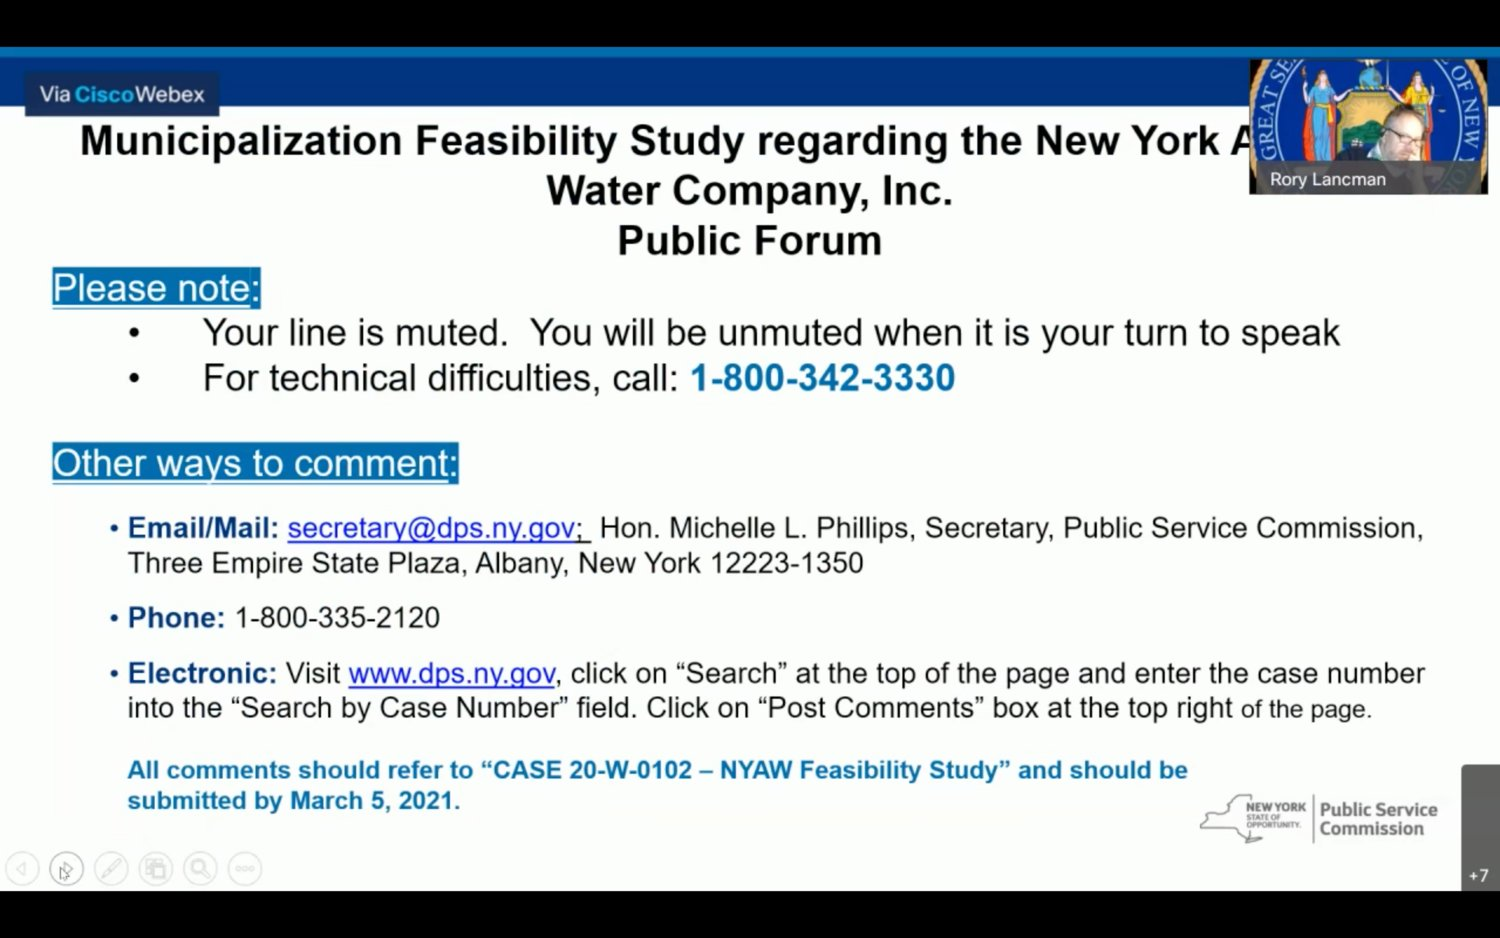 On Thursday, Rory Lancman, special counsel for ratepayer protection at the state Department of Public Service, hosted a virtual hearing at which South Shore residents aired their grievances about New York American Water, the private utility currently under the scrutiny of a state-led feasibility study.